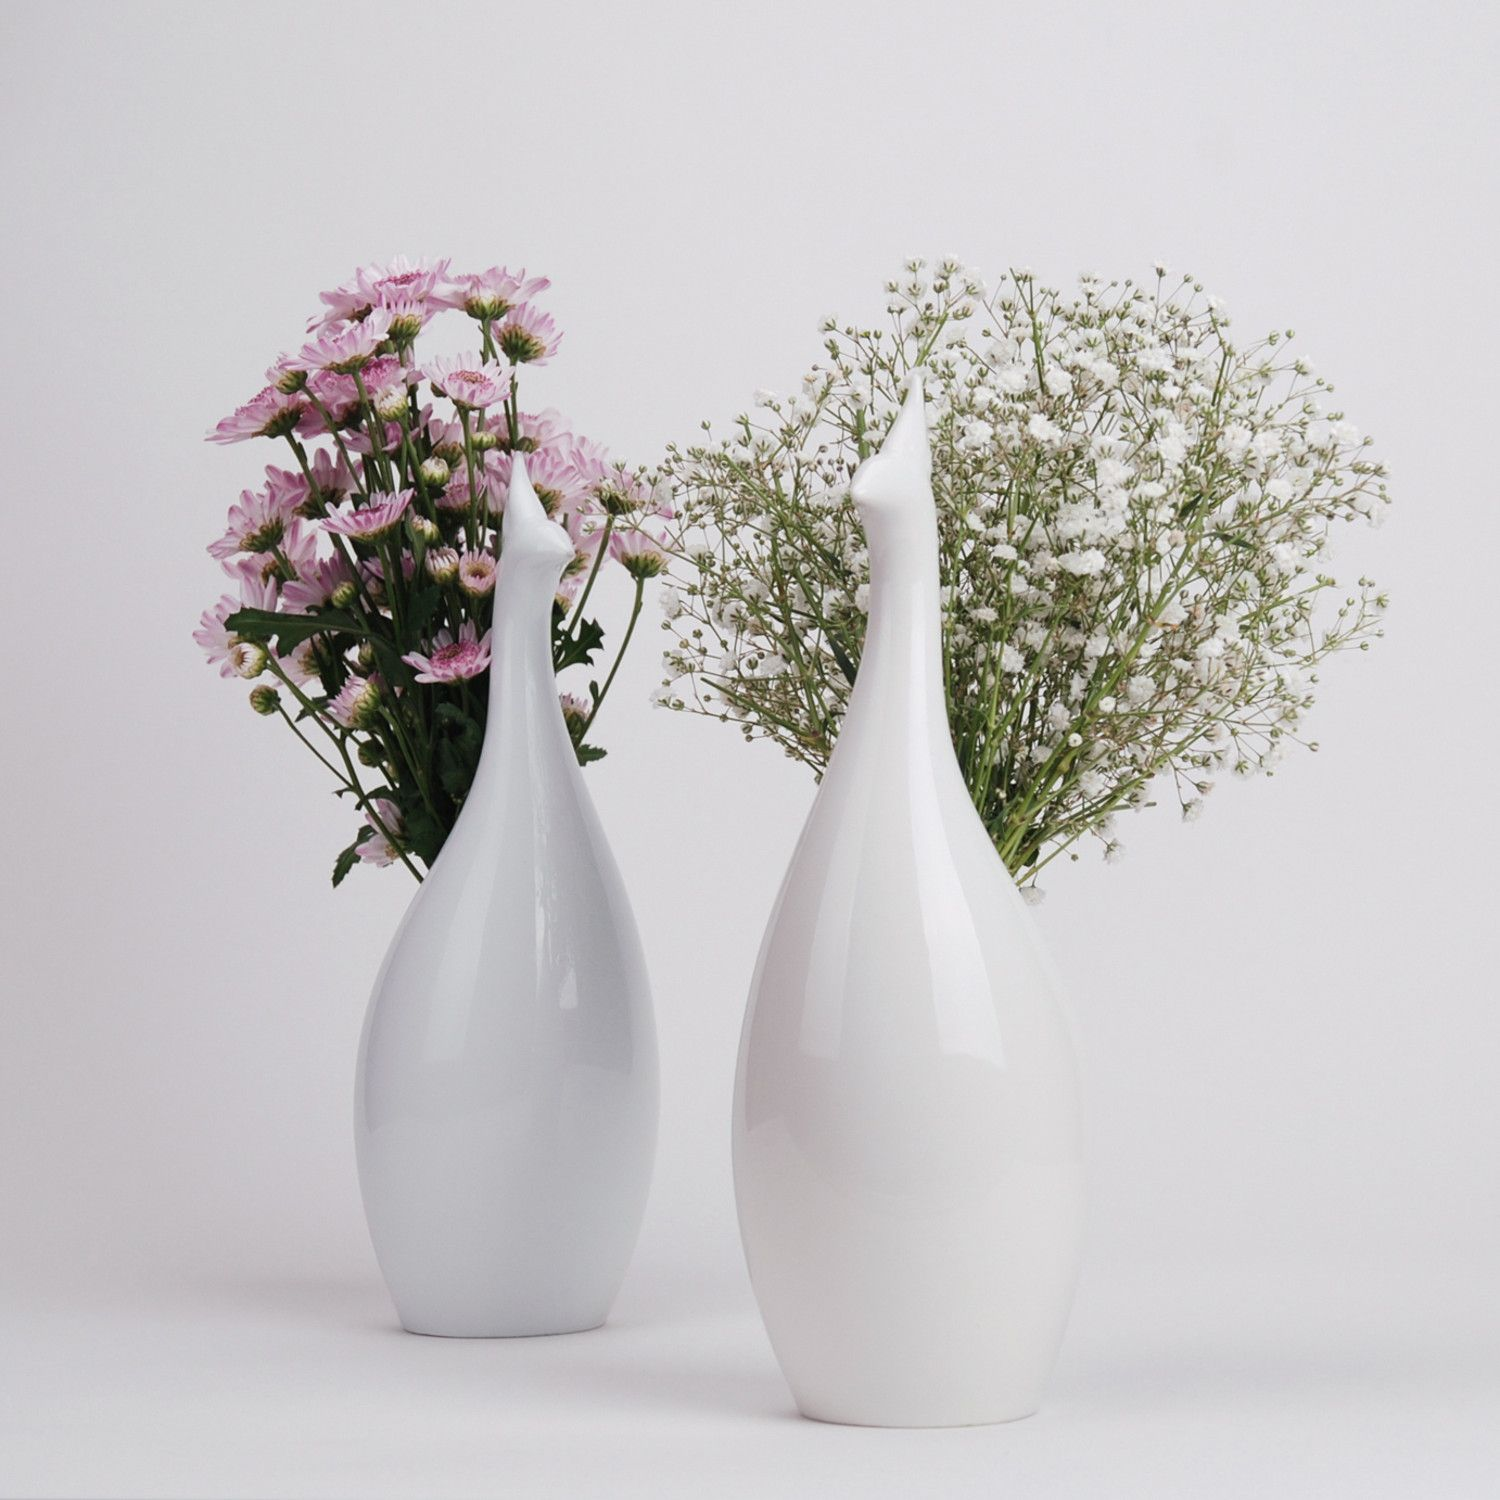 Peakco flower vase beauty and function great combination my peakco is a flower vase inspired by the majestic peacock colorful flowers bloom in the darling white ceramic sculpture expressing the shape of the birds reviewsmspy